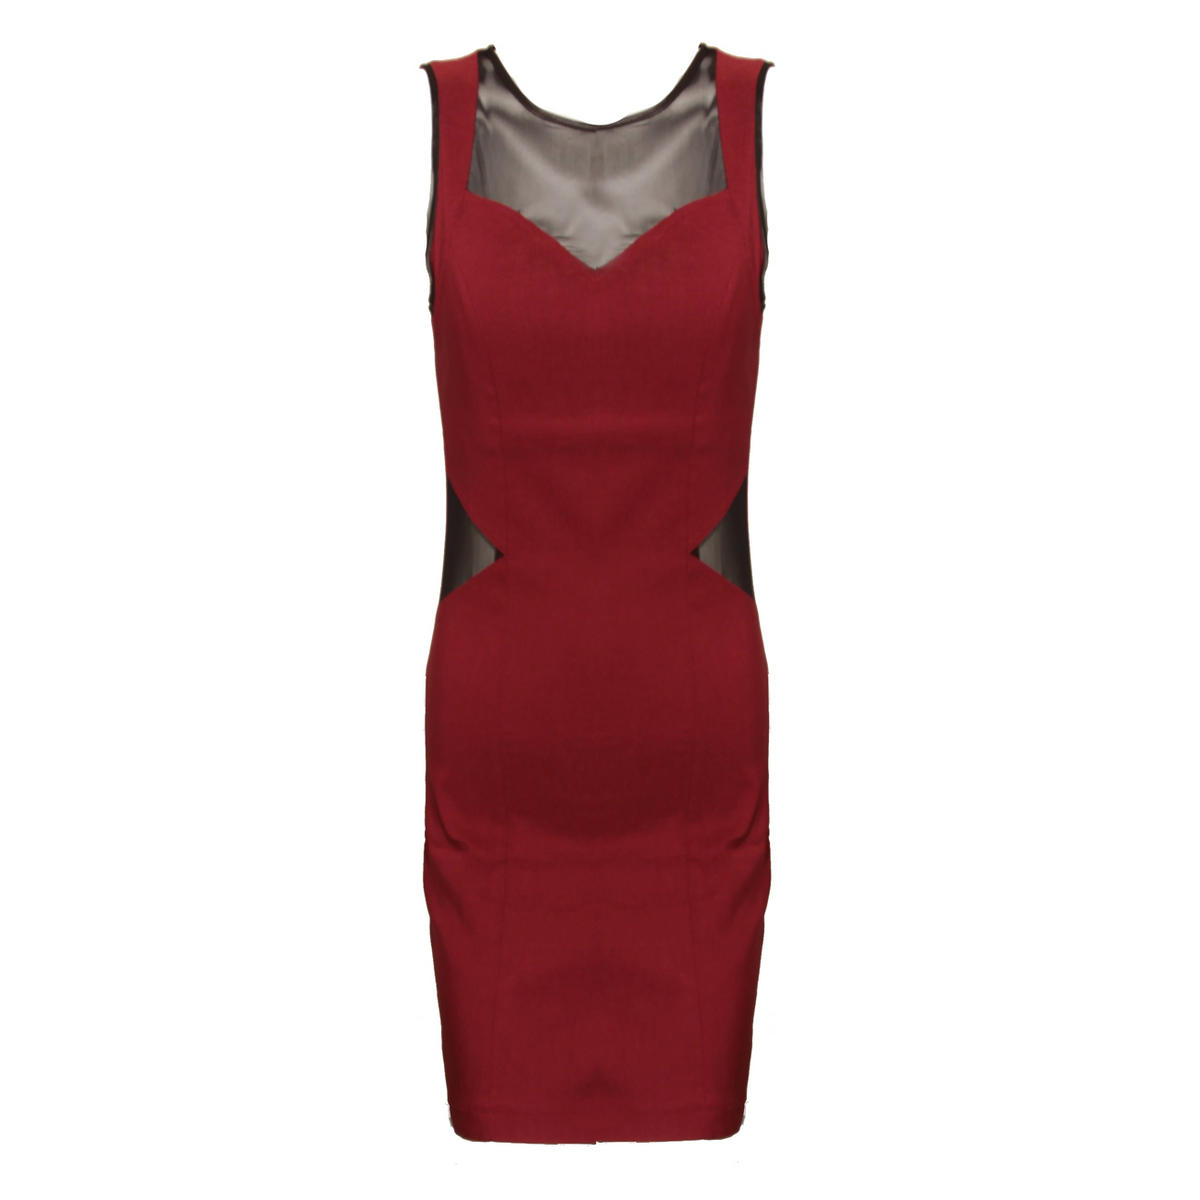 SIZE 12/14 ONLY Red Cut Out Mesh Dress Preview